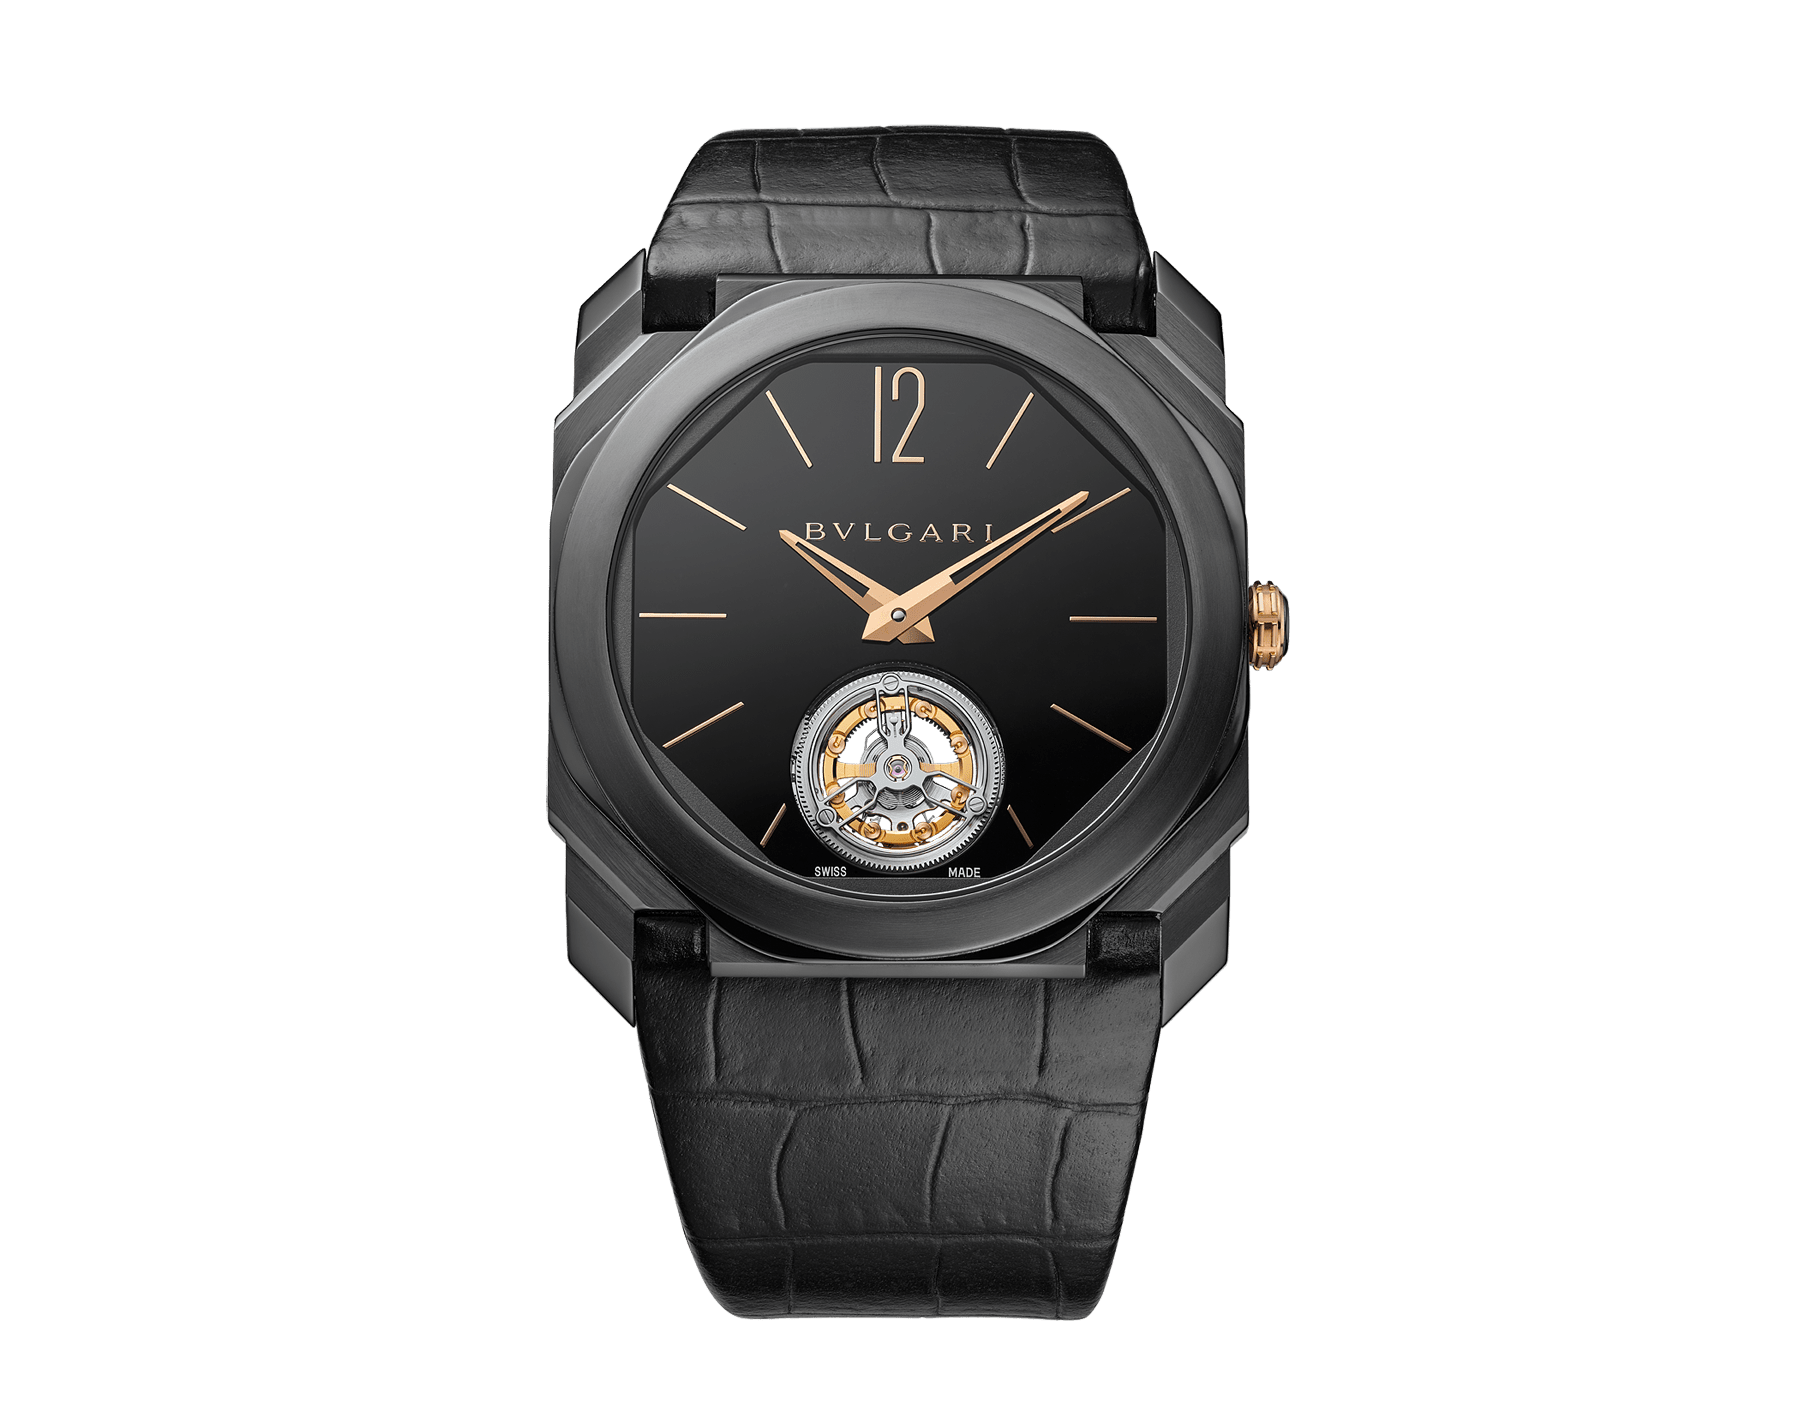 Orologio Octo Finissimo Tourbillon con movimento meccanico di manifattura ultrapiatto a carica manuale con cuscinetti a sfera, cassa in titanio con trattamento DLC (Diamond-Like Carbon), quadrante laccato nero con tourbillon a vista e cinturino in alligatore nero. 102560 image 1